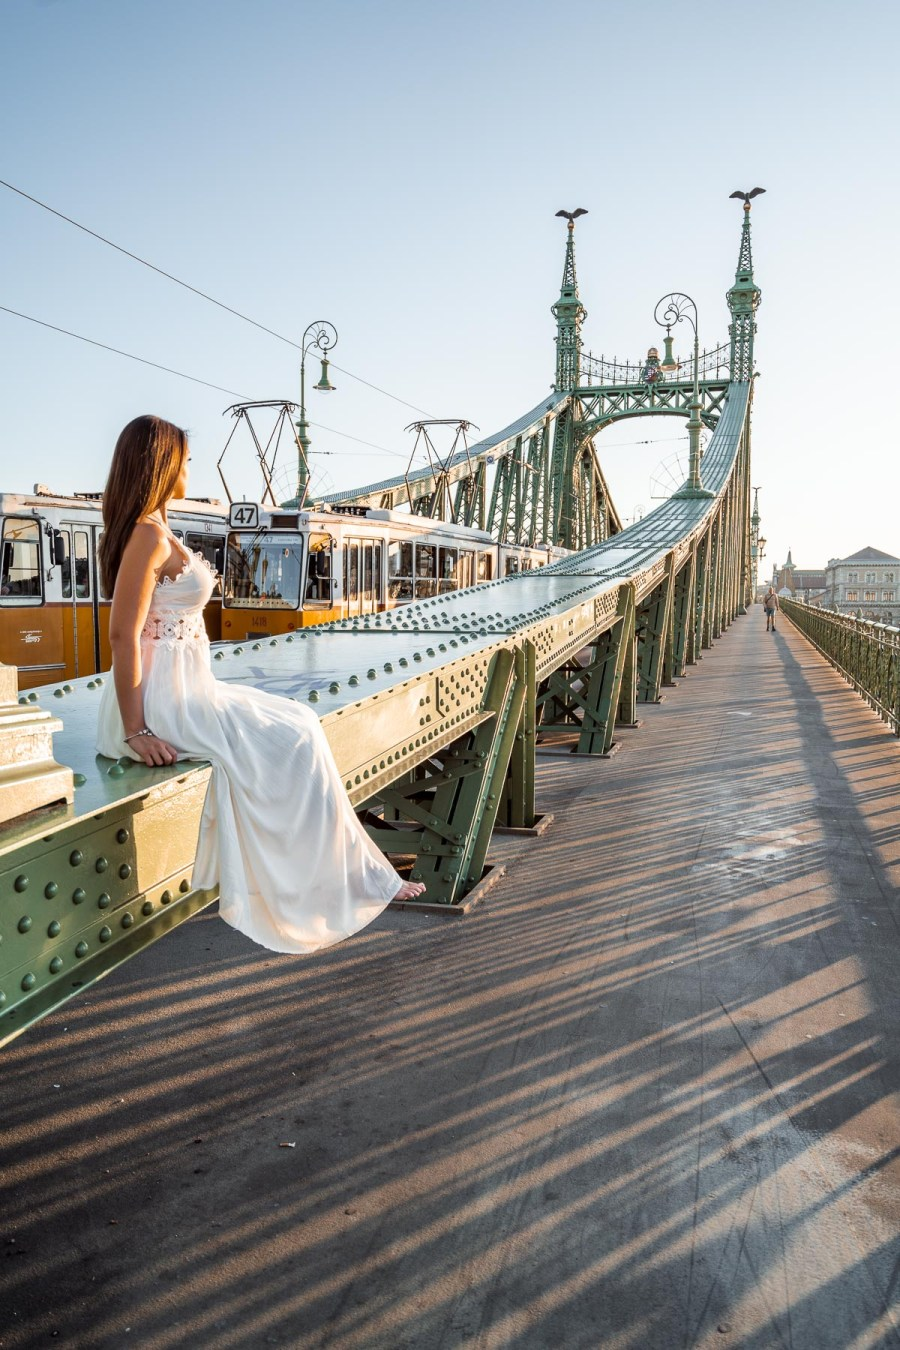 Girl in a white dress sitting on the Liberty Bridge in Budapest